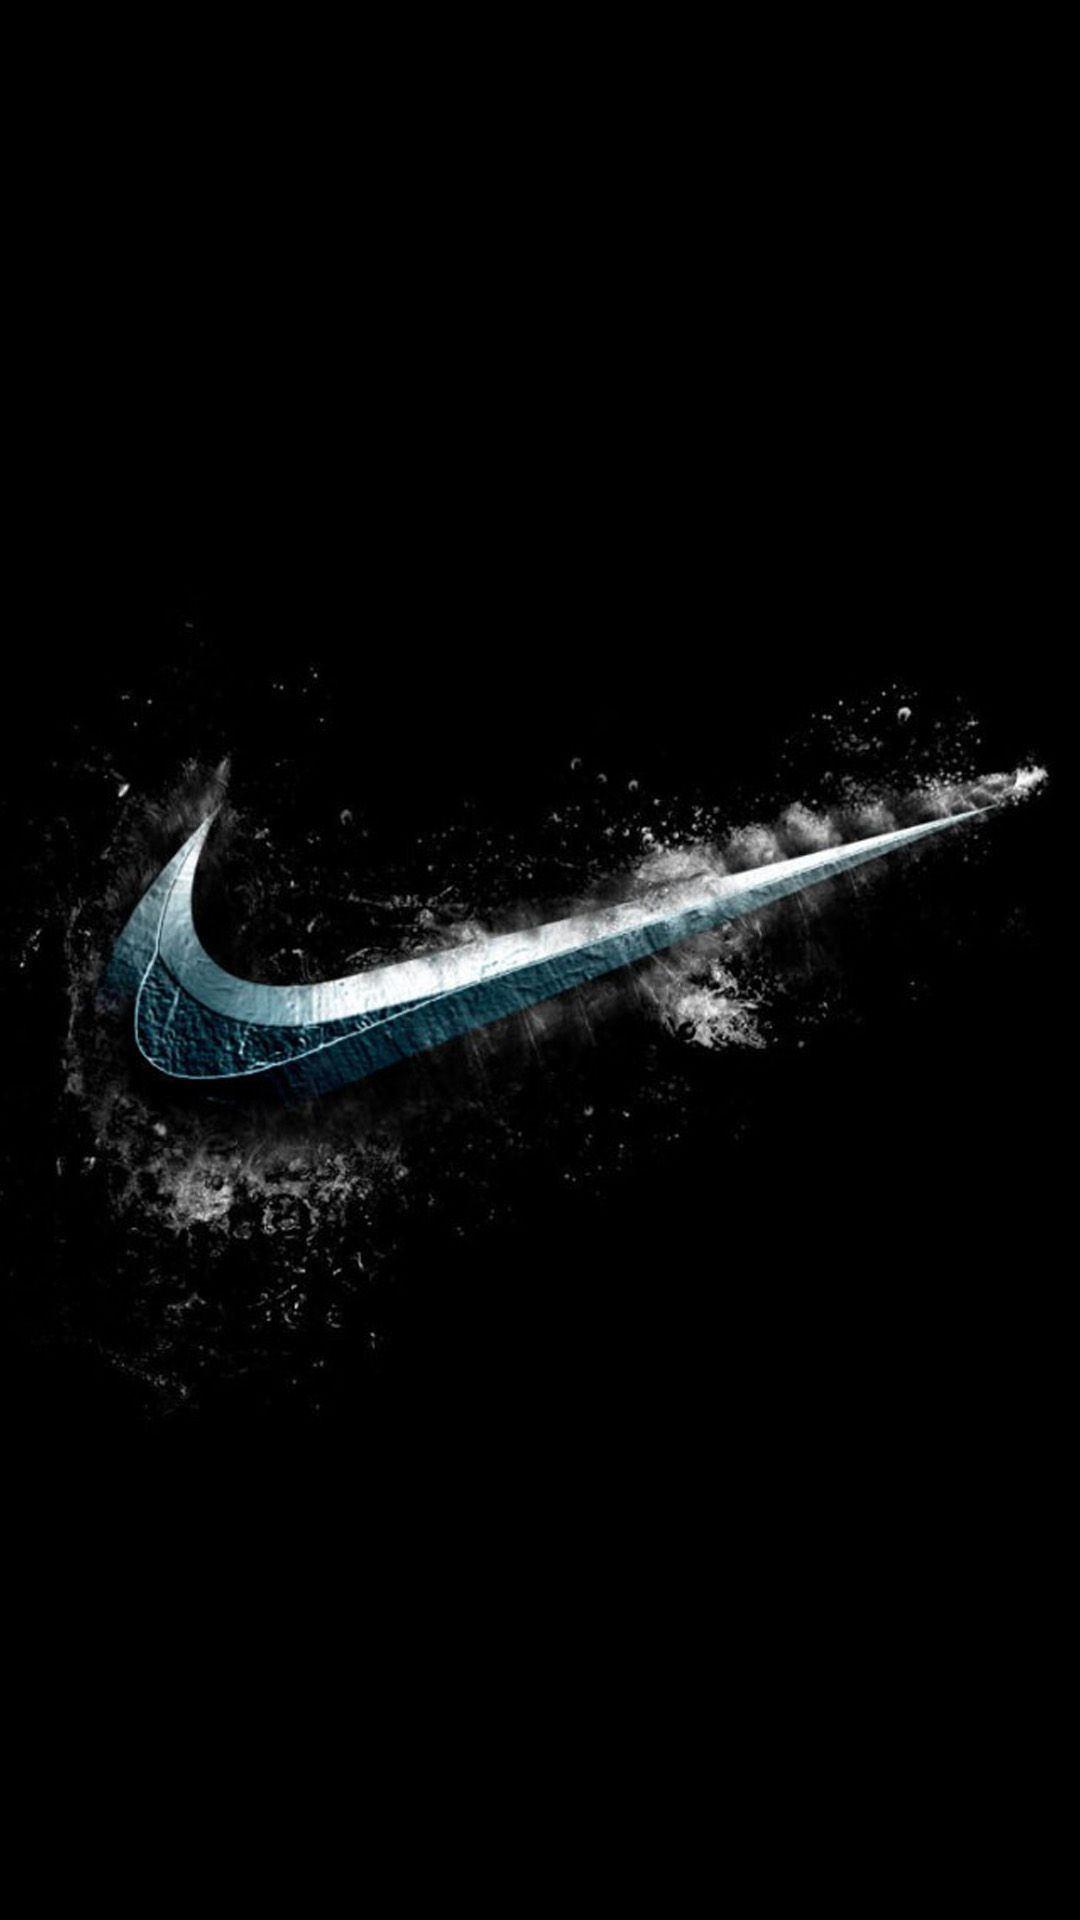 Galaxy Nike Wallpapers High Definition Hupages Download Iphone Wallpapers Nike Wallpaper Iphone Nike Logo Wallpapers Nike Wallpaper